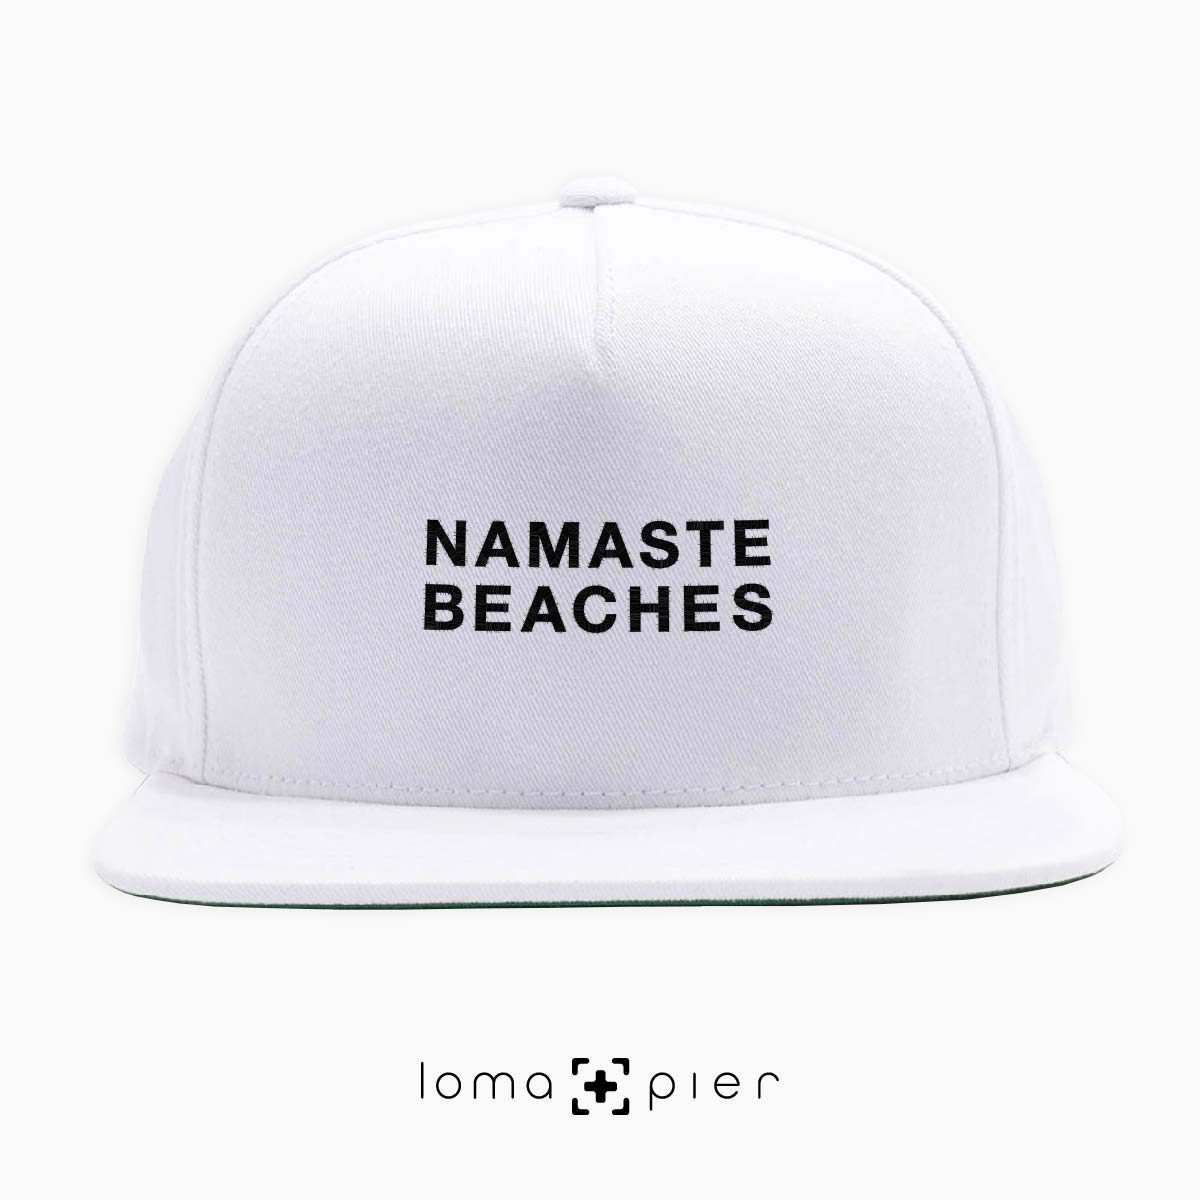 NAMASTE BEACHES hermosa beach yoga embroidered on a white classic snapback hat with black thread by loma+pier hat store